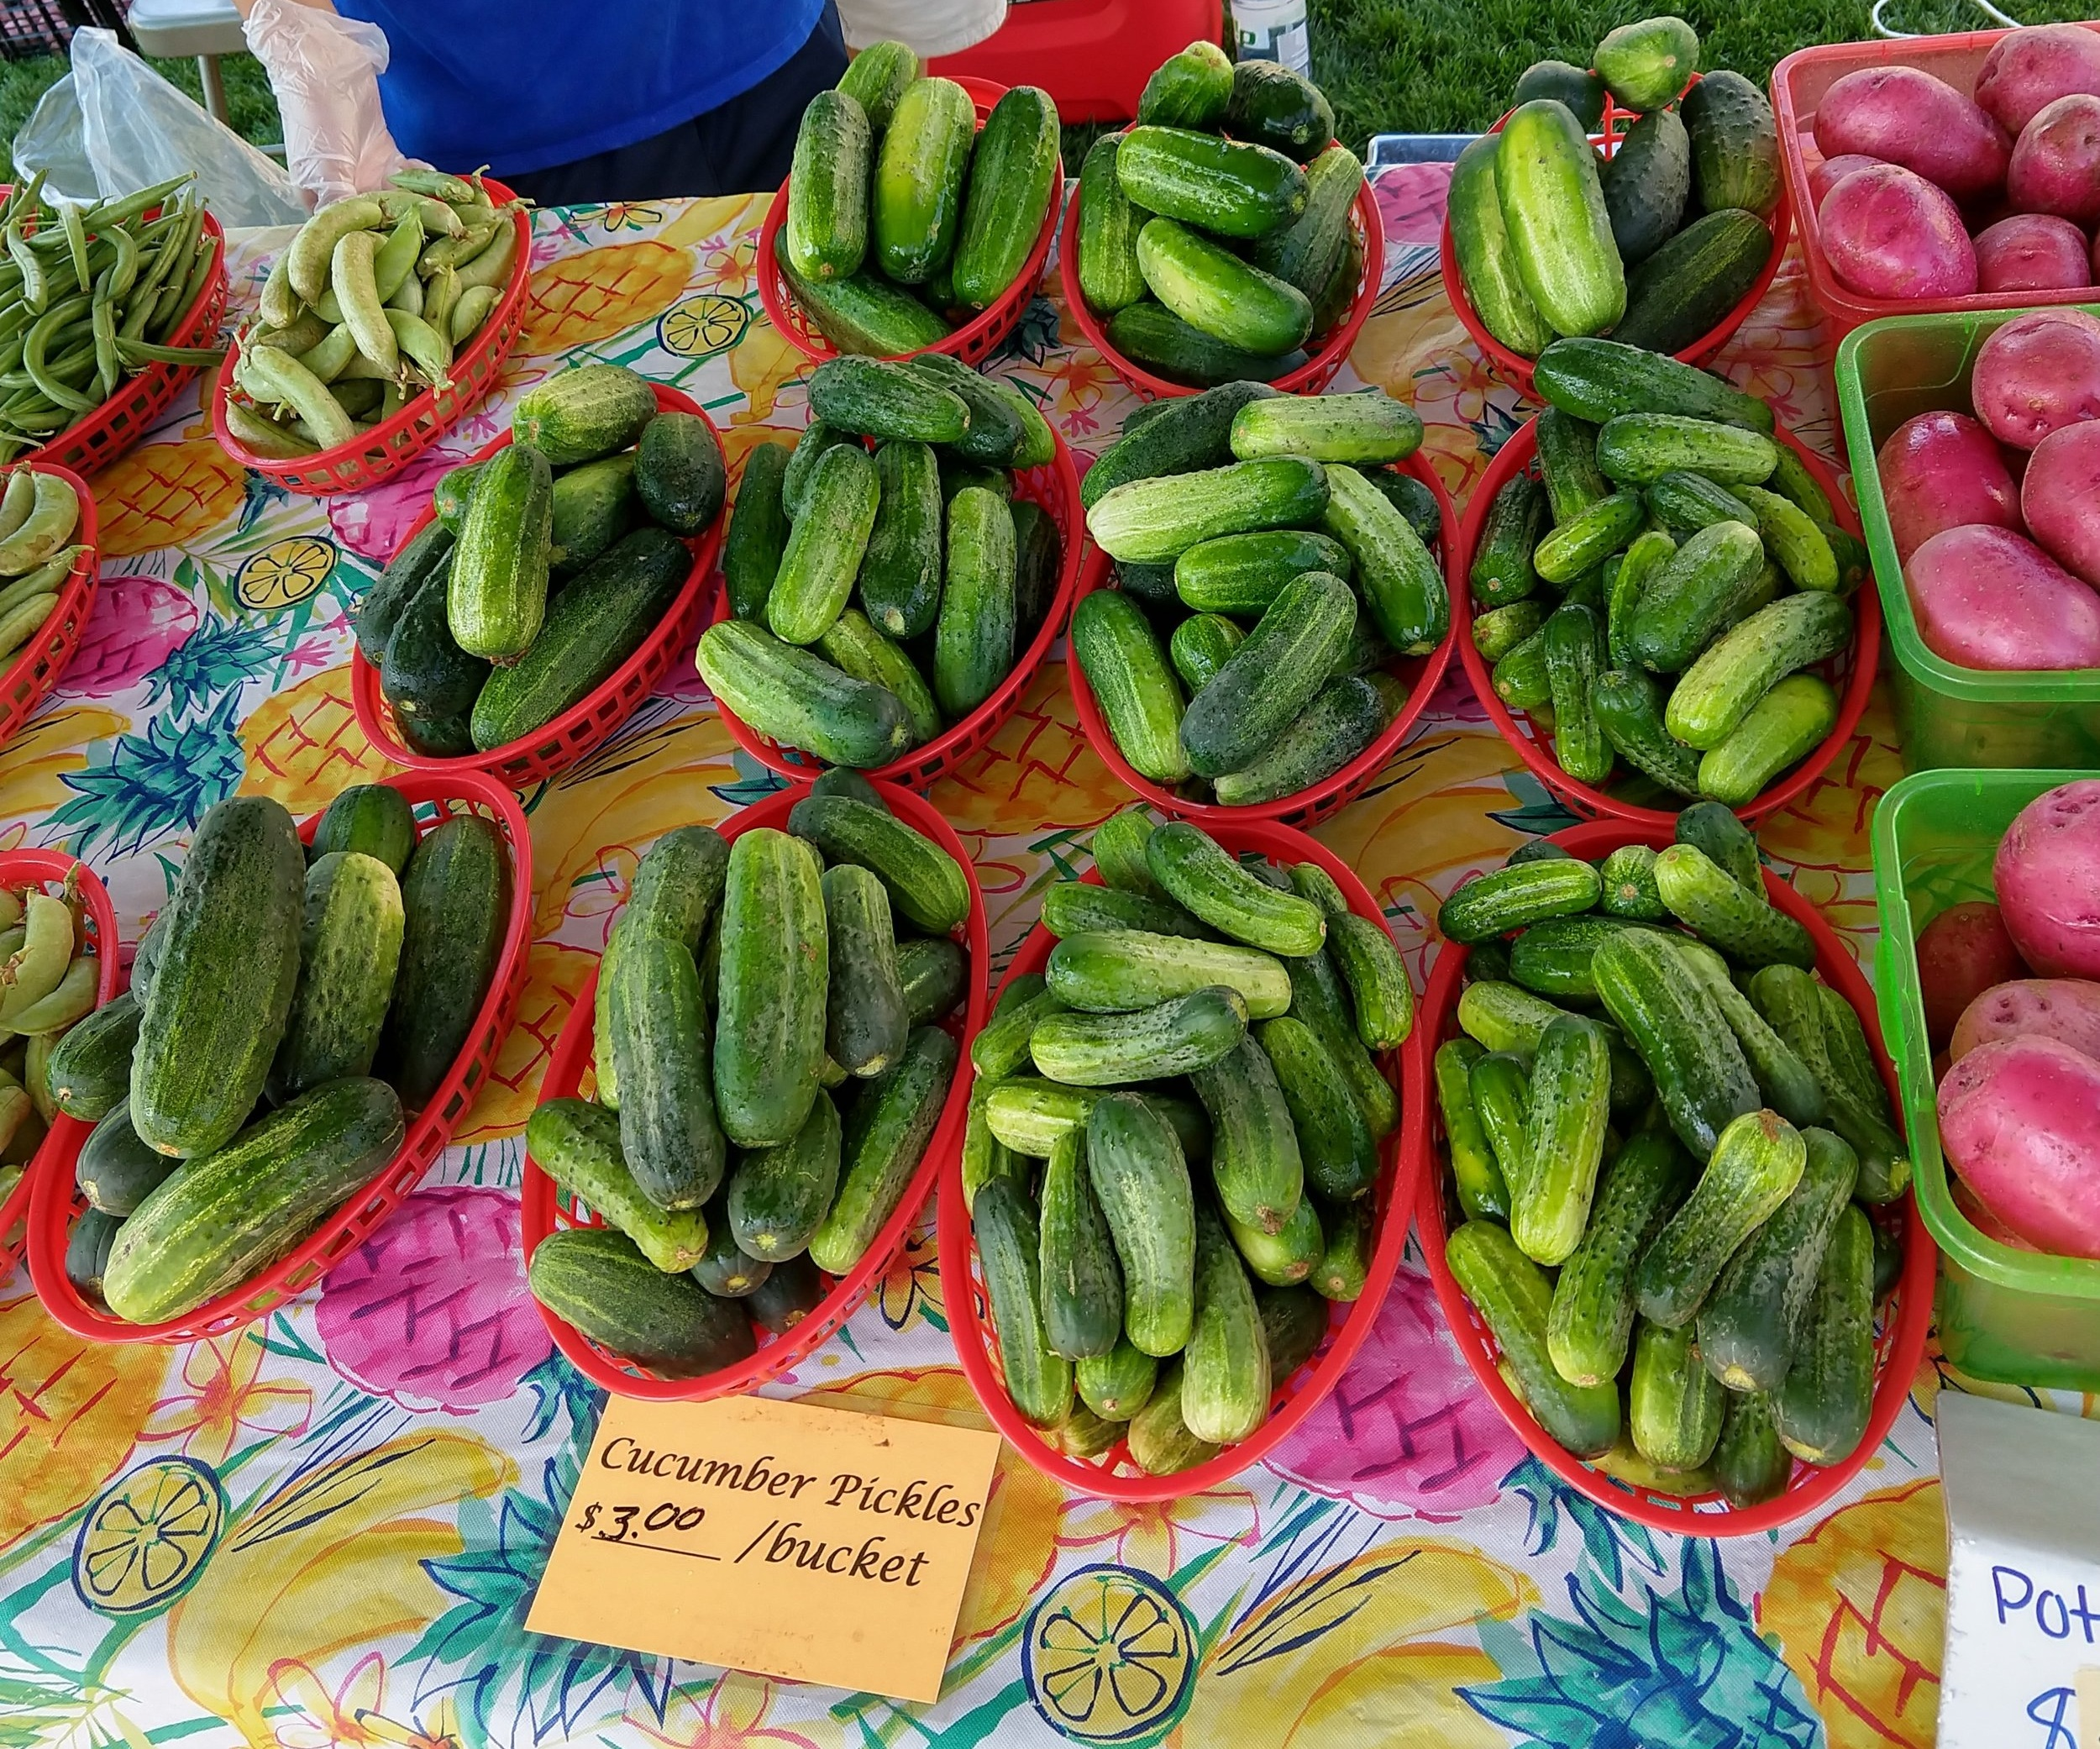 The first step for good pickles is to get them fresh. Our local farmer's markets have quality produce at bargain prices.